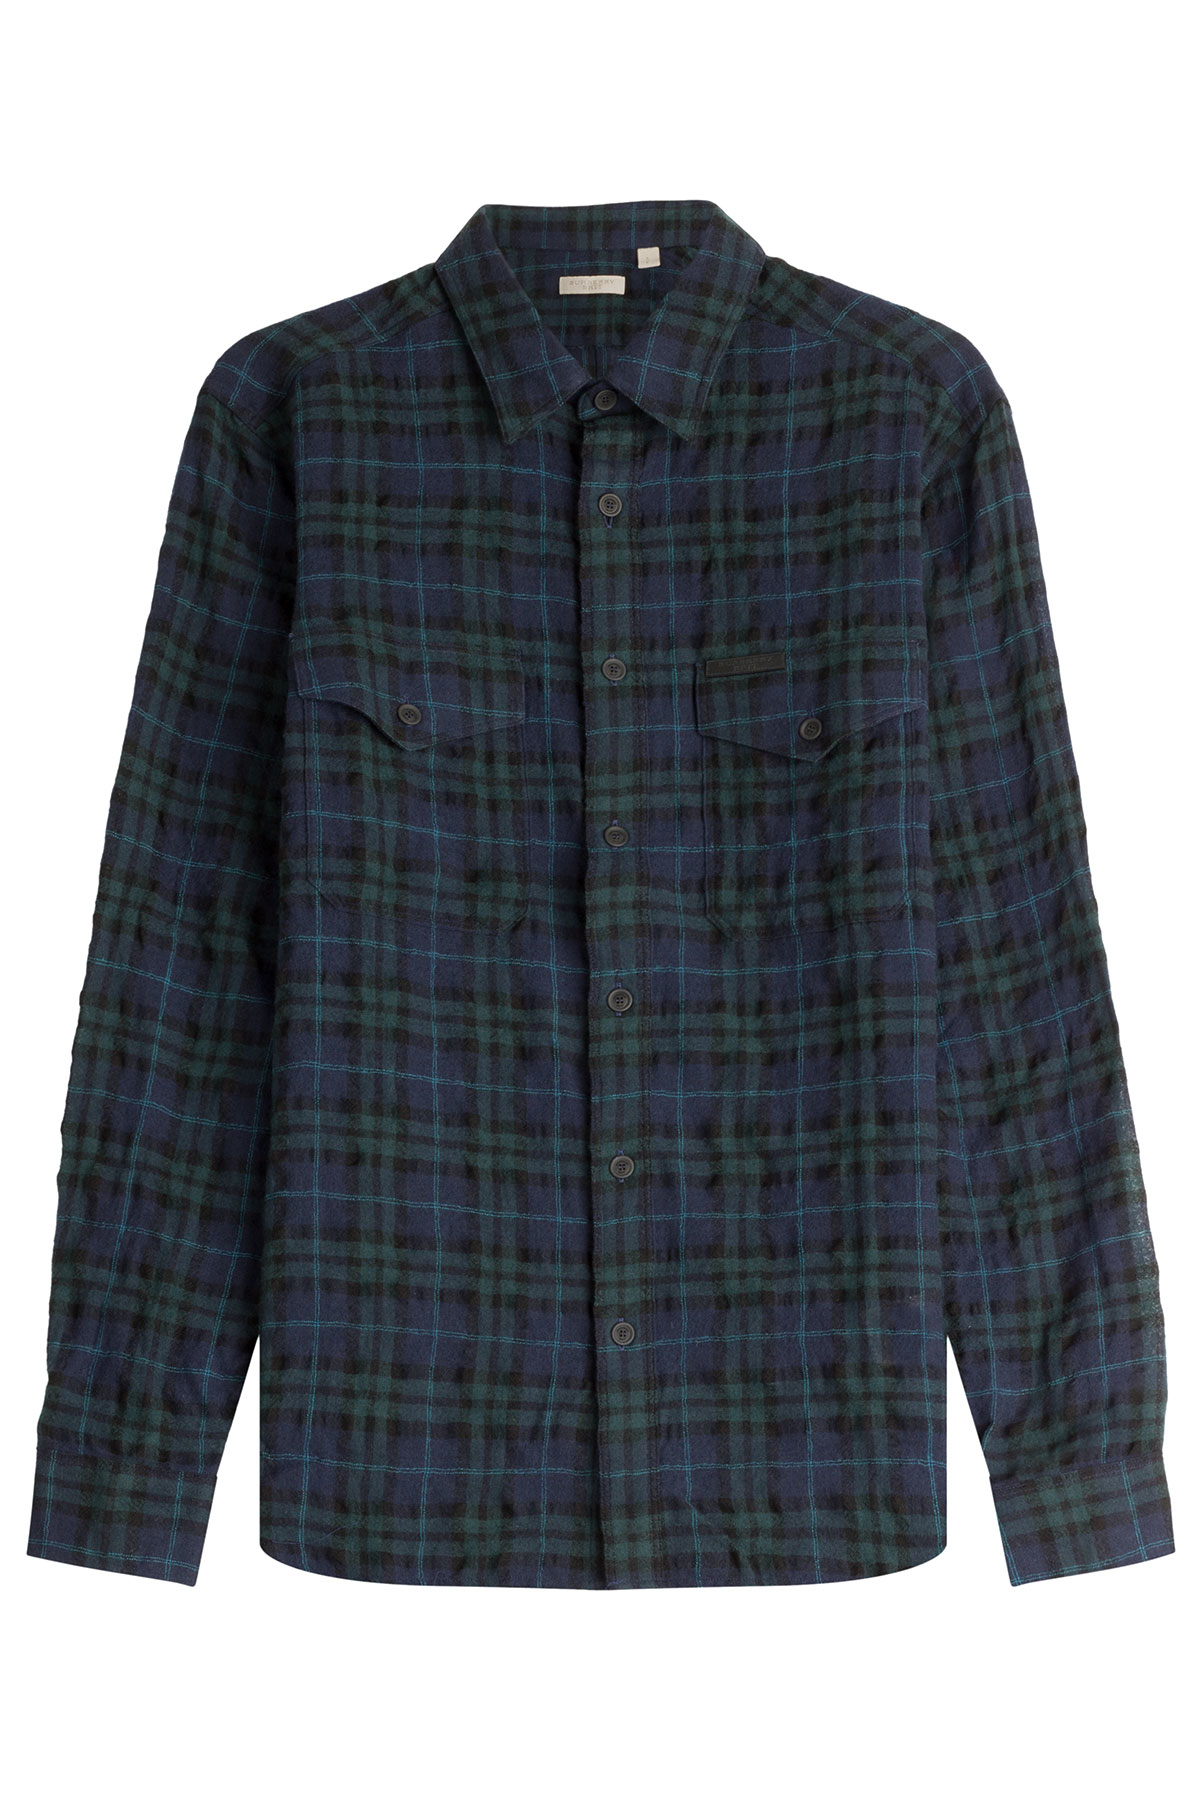 Burberry brit checked cotton shirt multicolor in green for Burberry brit checked shirt